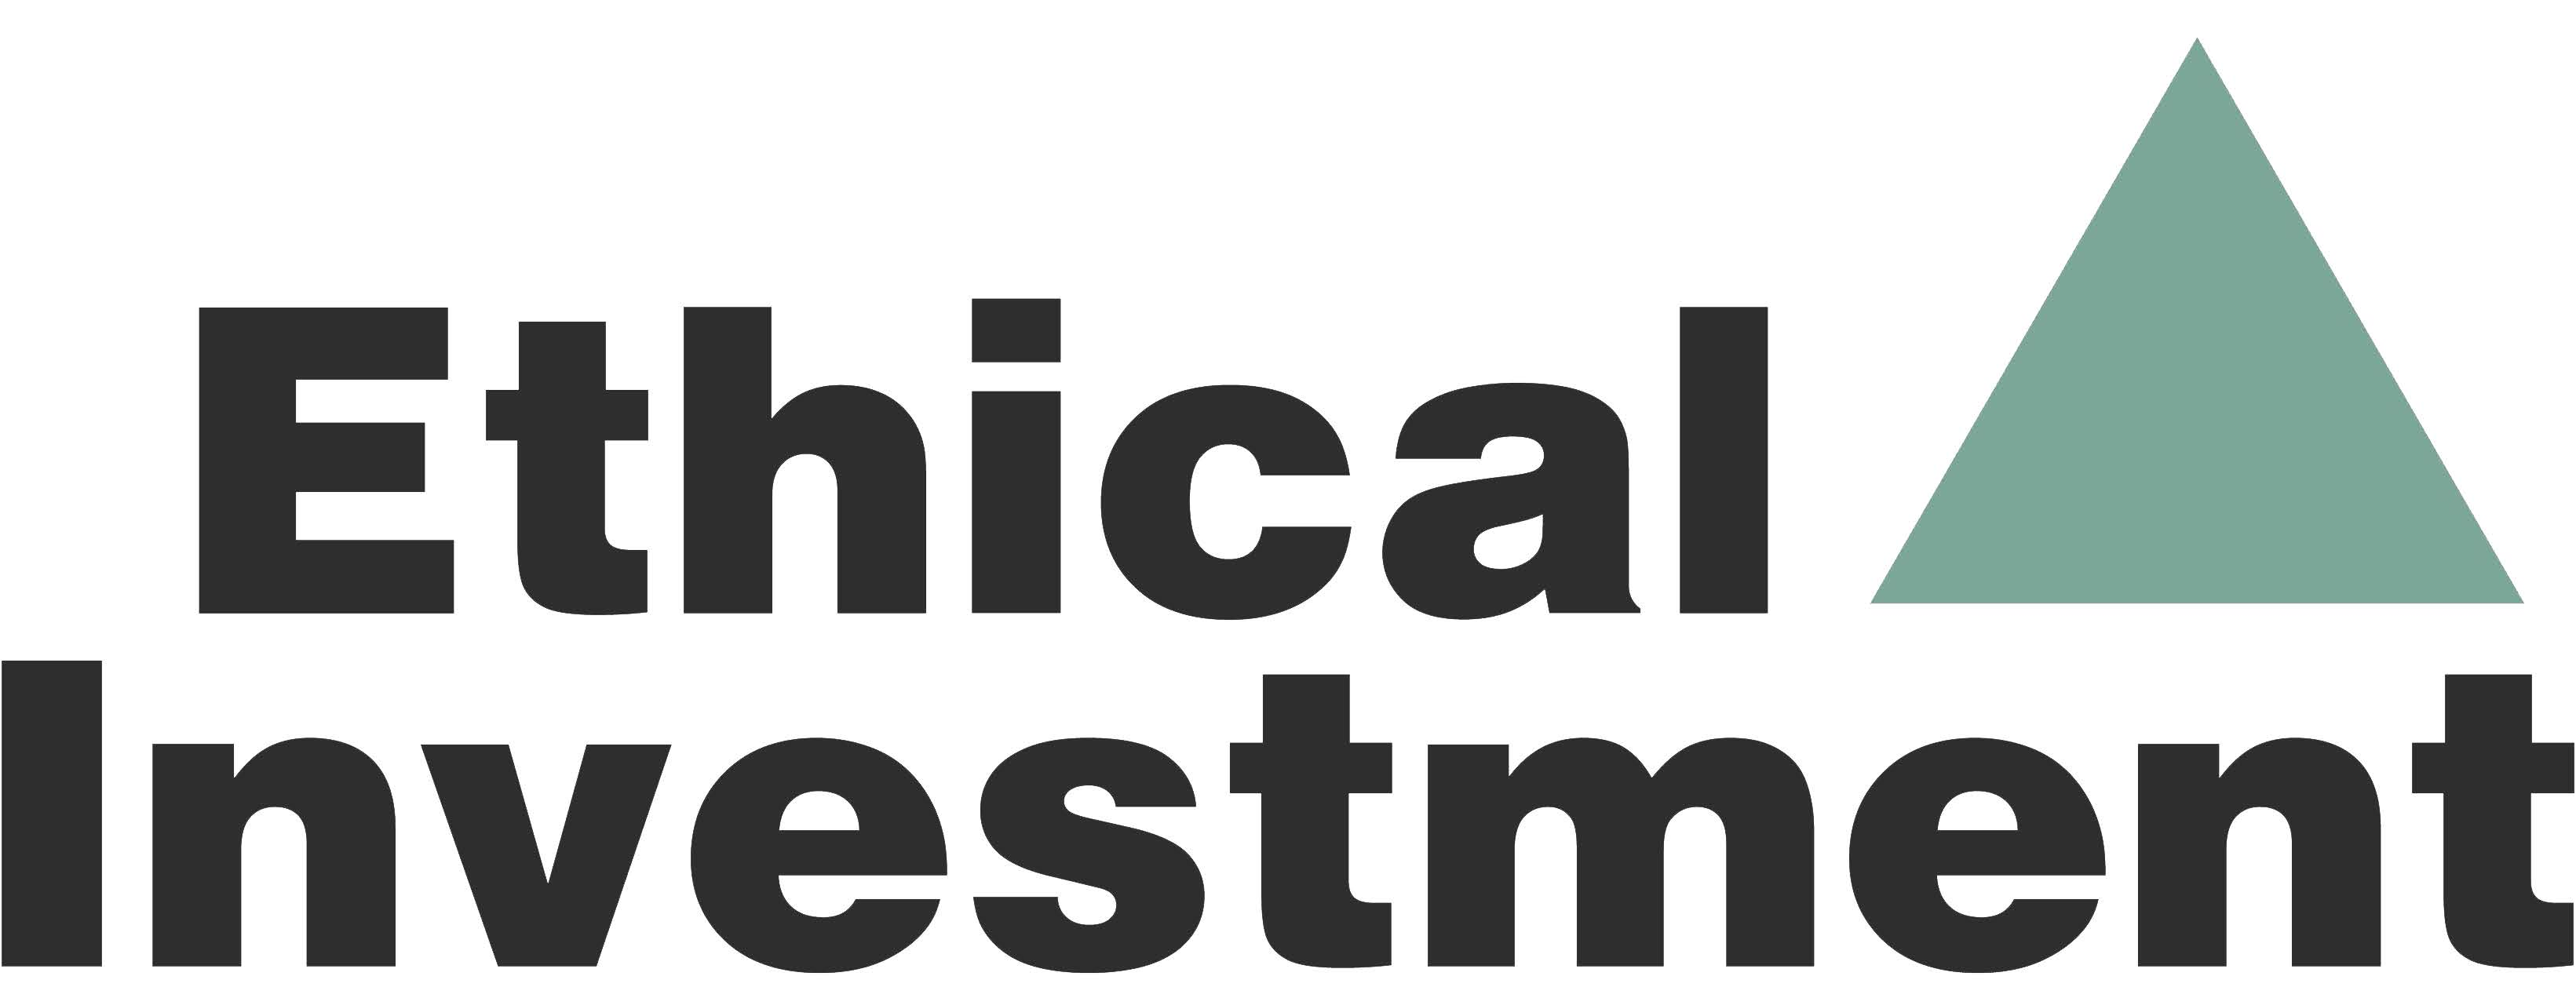 The Ethical Investment Co-operative Ltd